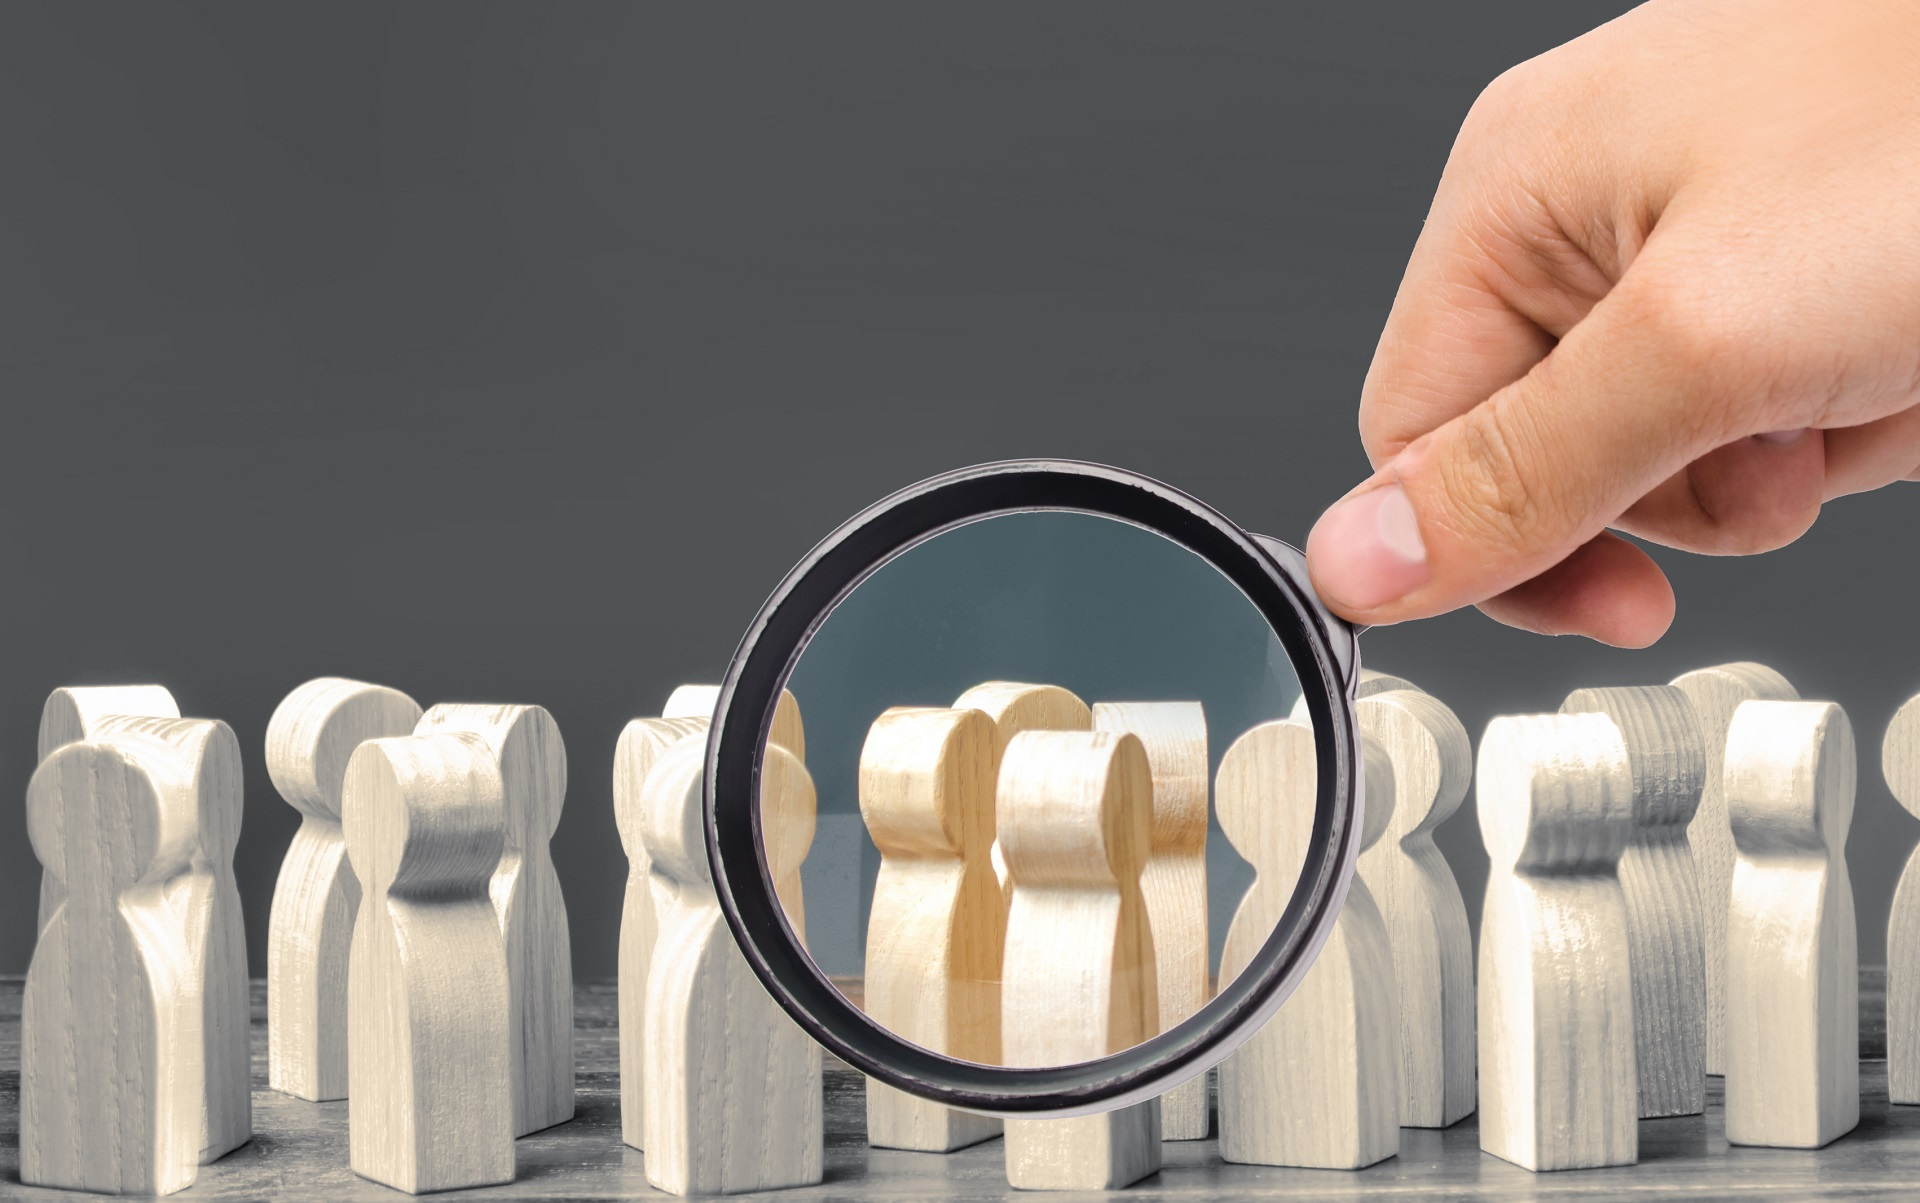 A magnifying glass looks at a crowd of wooden figures (as symbolic representation of segmentation in email marketing)